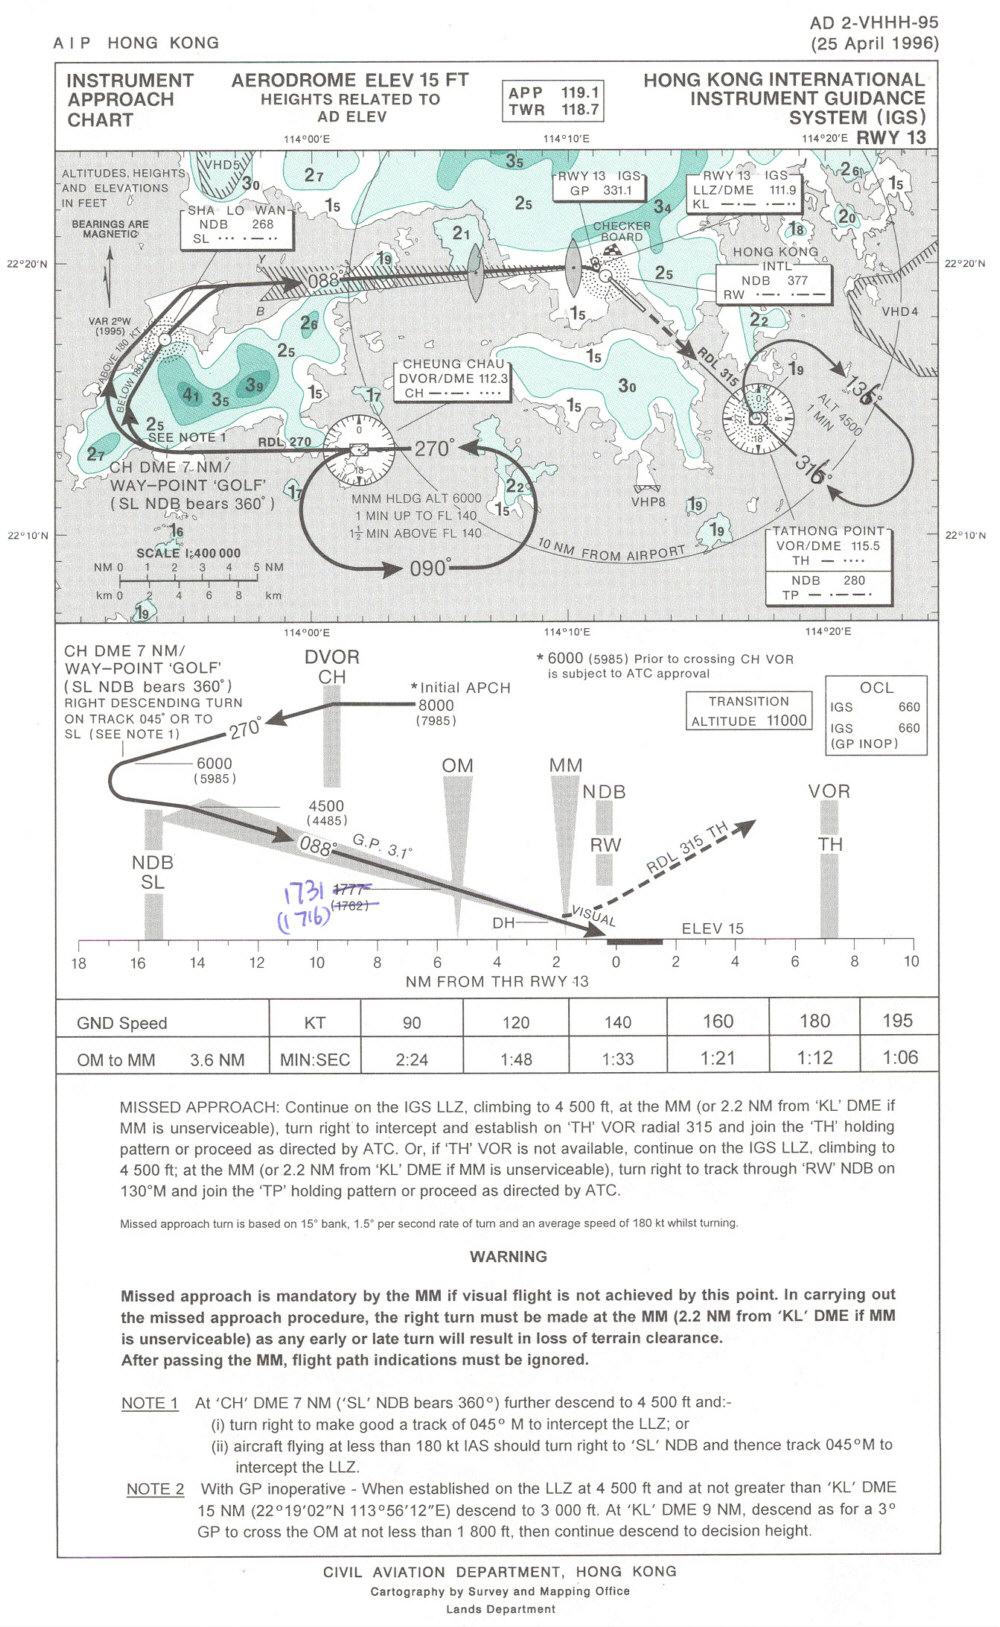 The approach plate olympics - more crazy charts | Air Facts Journal